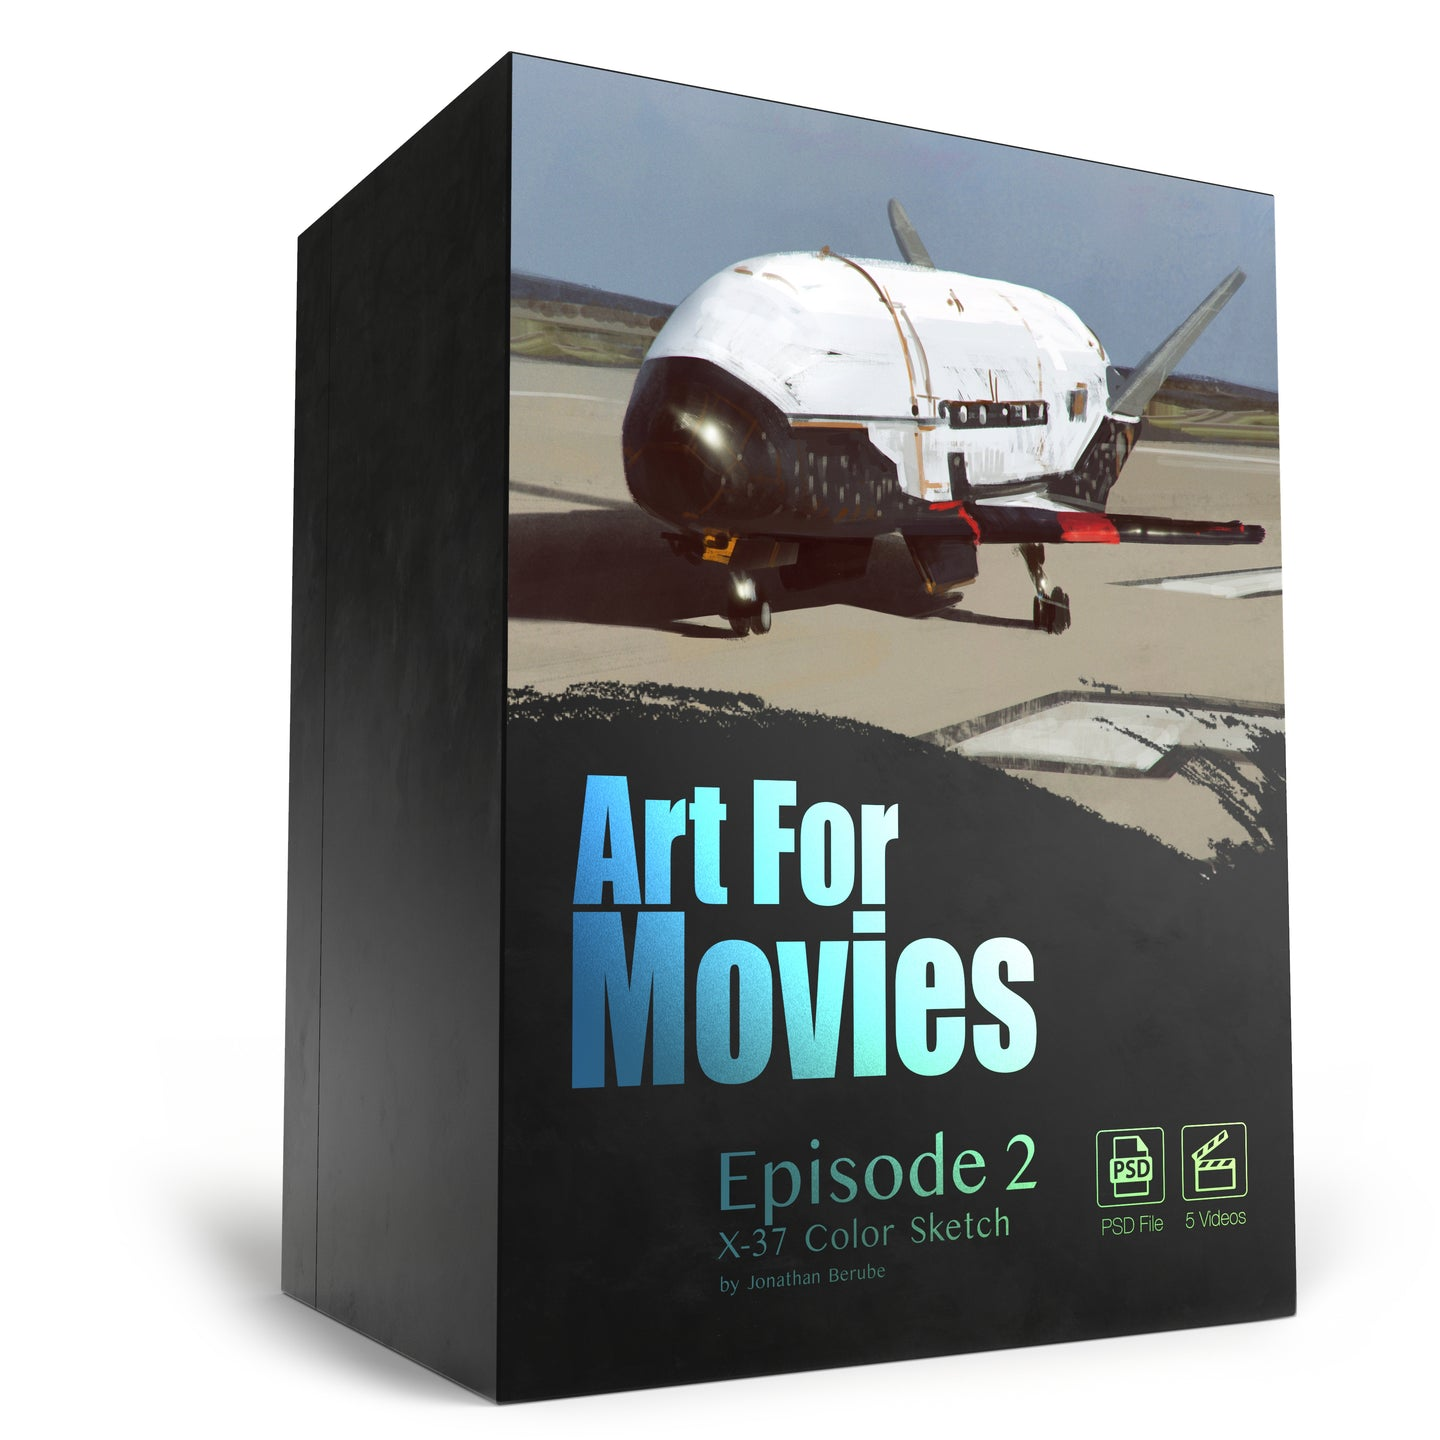 Art For Movies - Episode 2 X37-B Color Beat Sketch